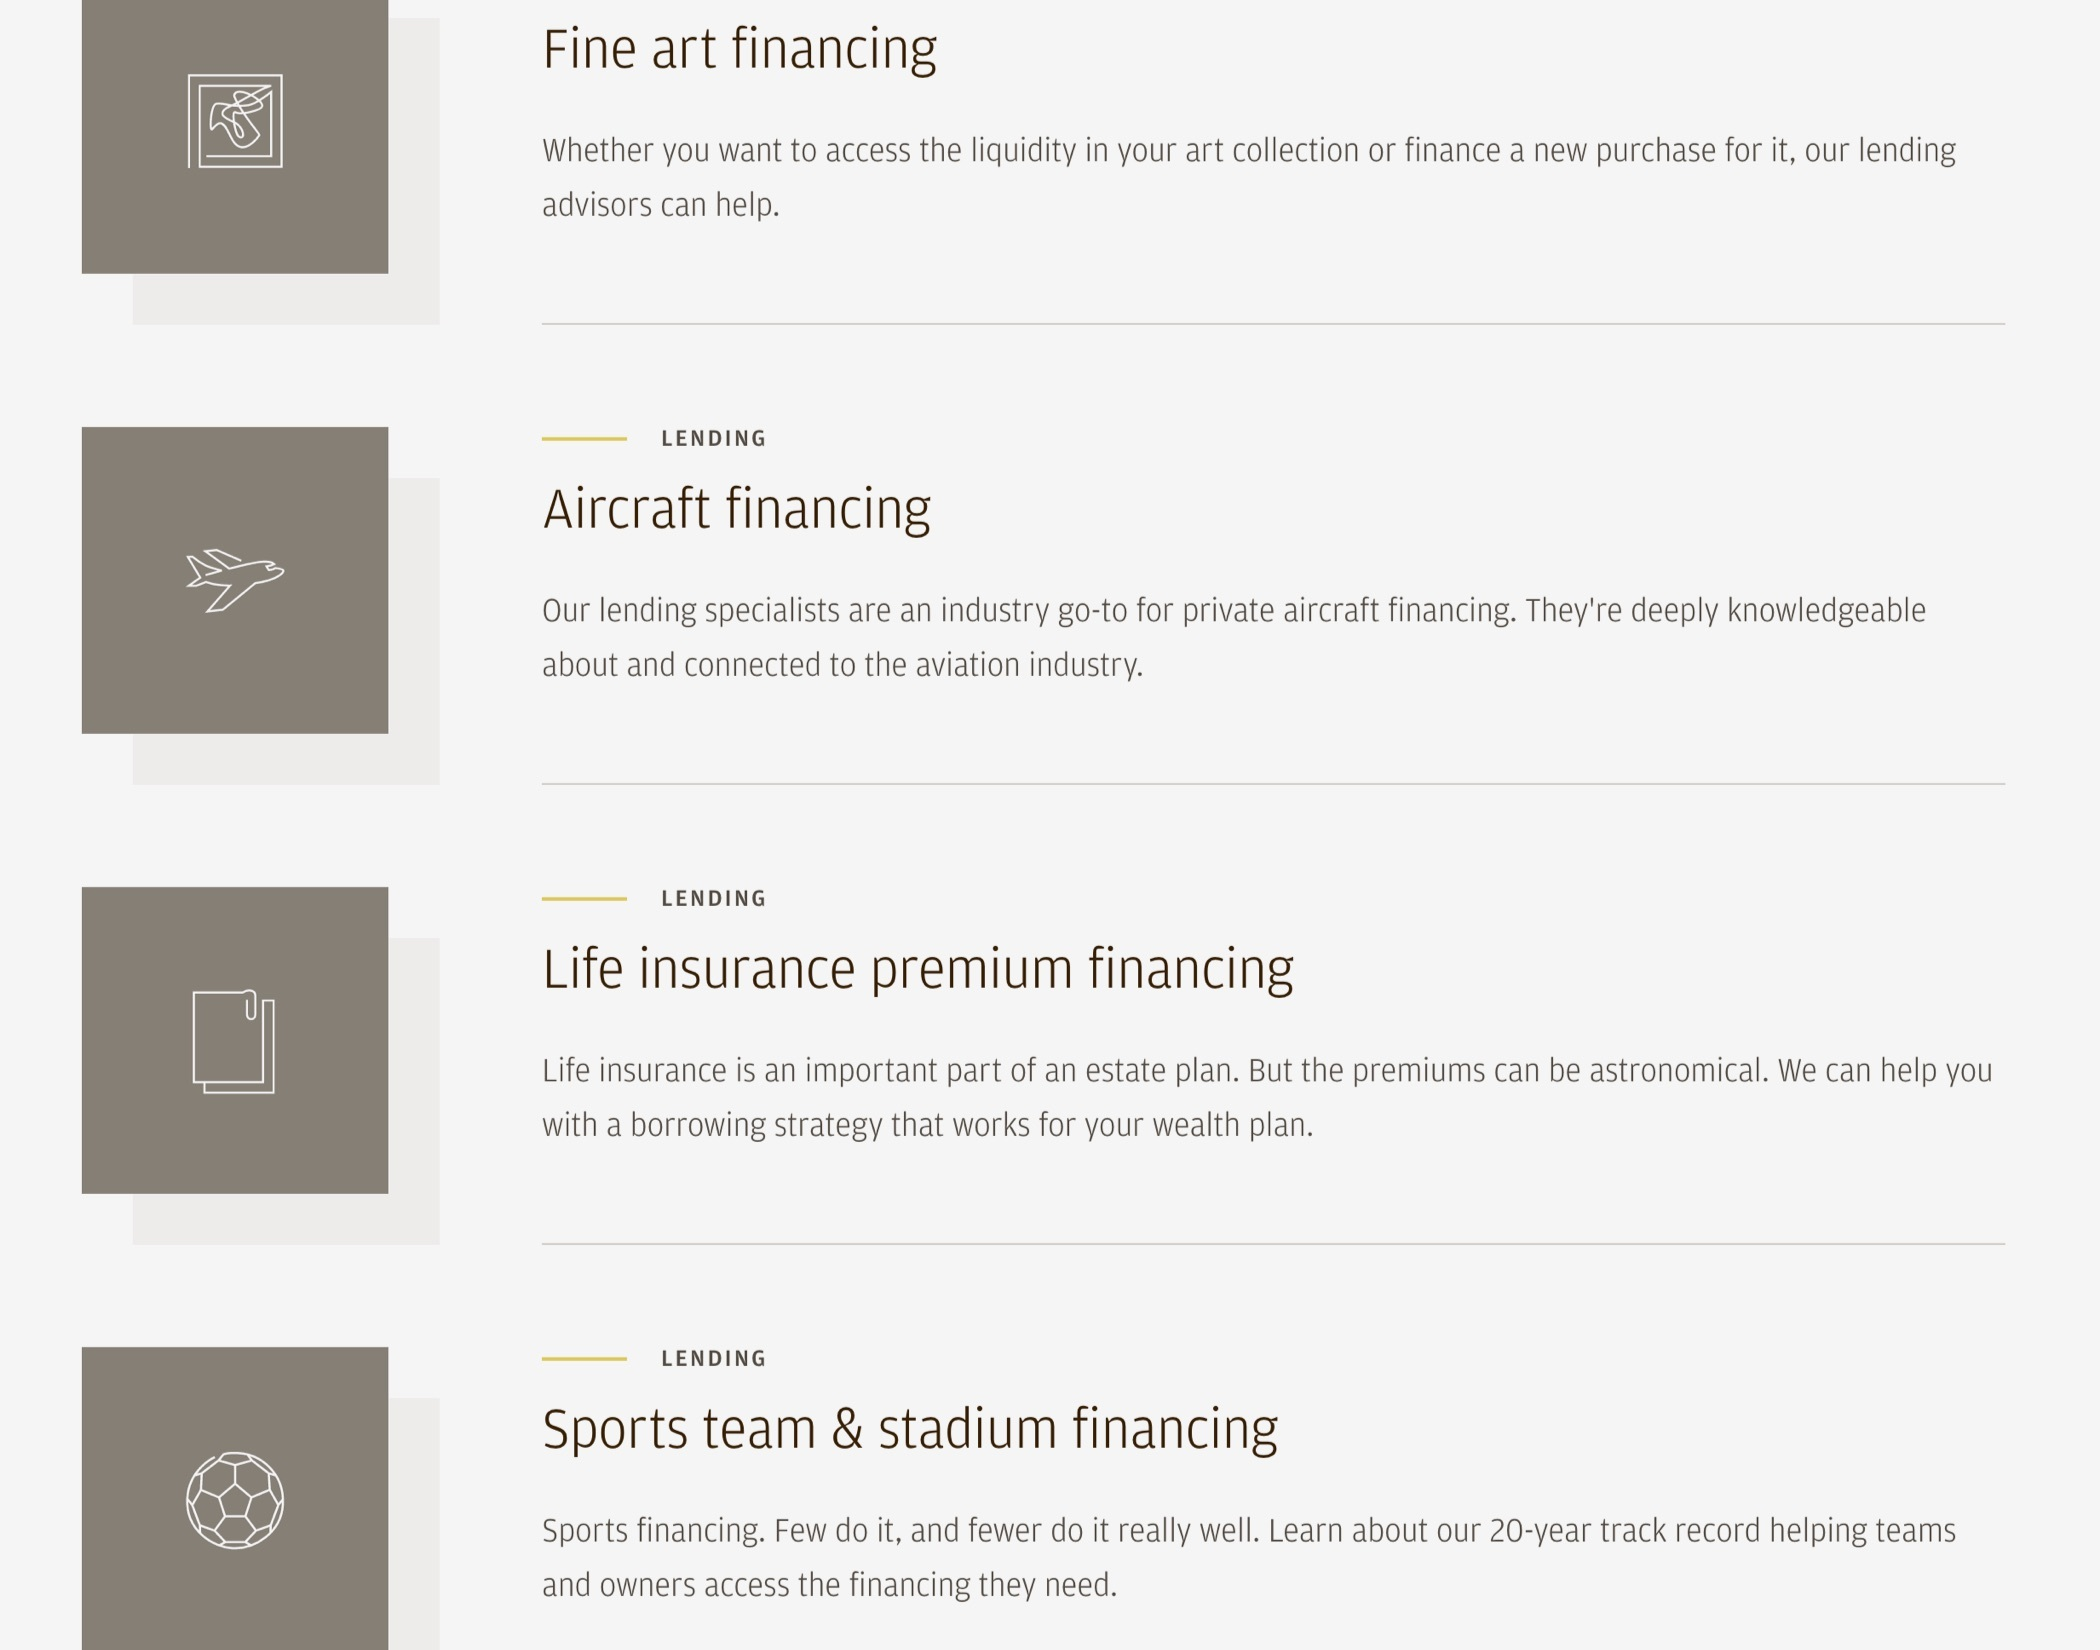 J.P. Morgan Private Bank Lending web page section listing specialty lending services, including fine art and aircraft financing.